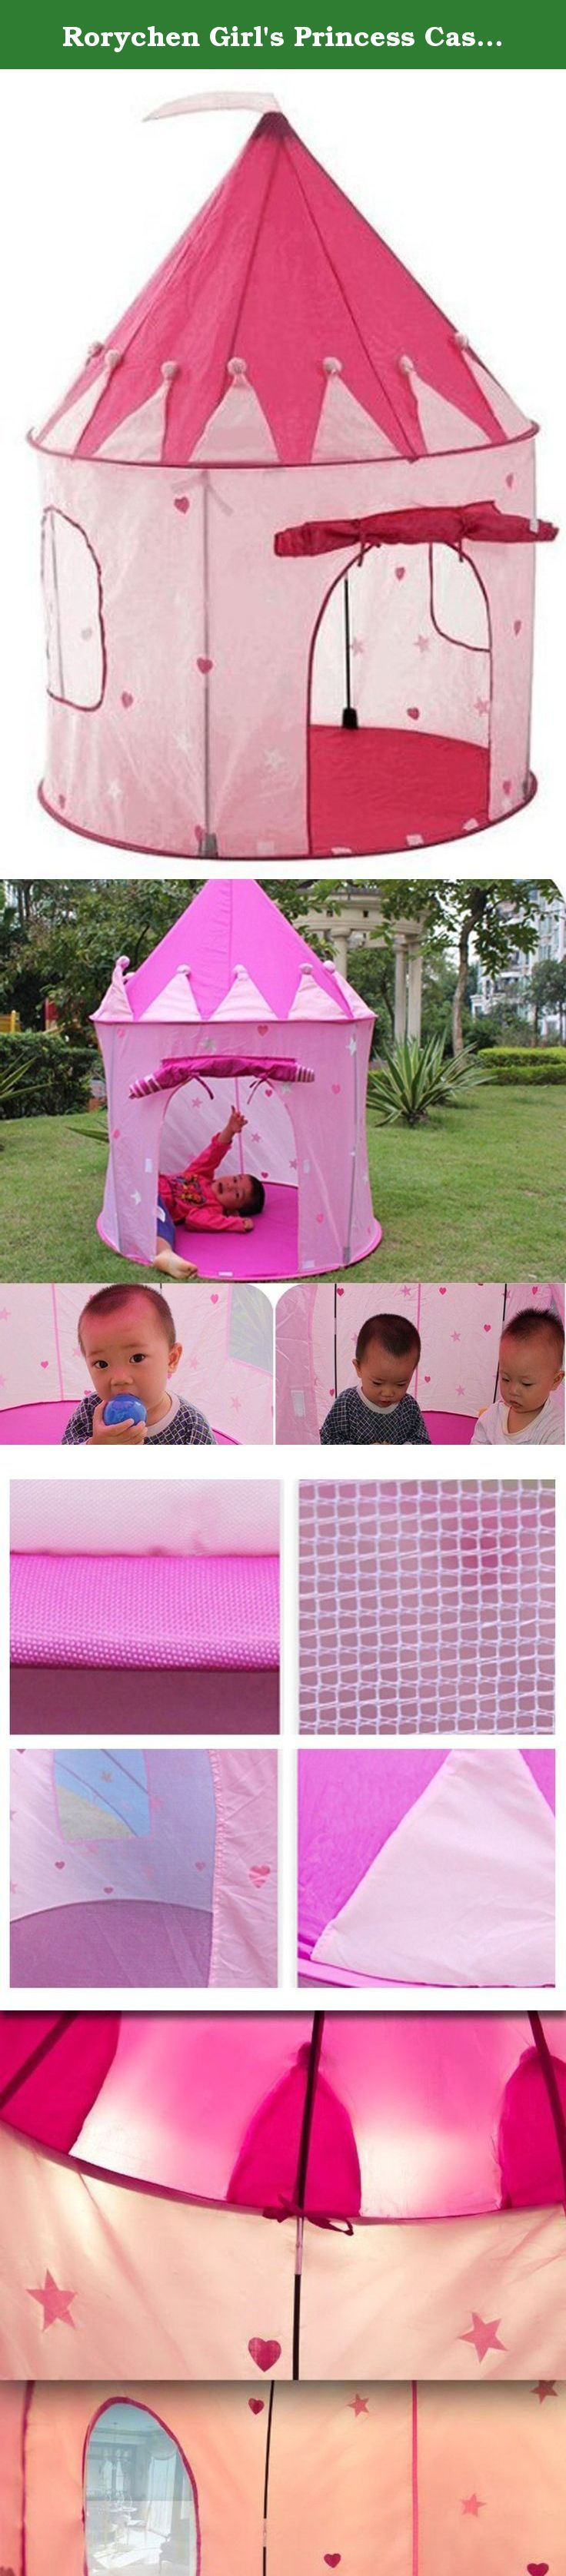 Rorychen Girlu0027s Princess Castle Play House Baby Kids Indoor/Outdoor Play Tents Pink. A & 326 best Play Tents u0026 Tunnels Sports u0026 Outdoor Play Toys u0026 Games ...